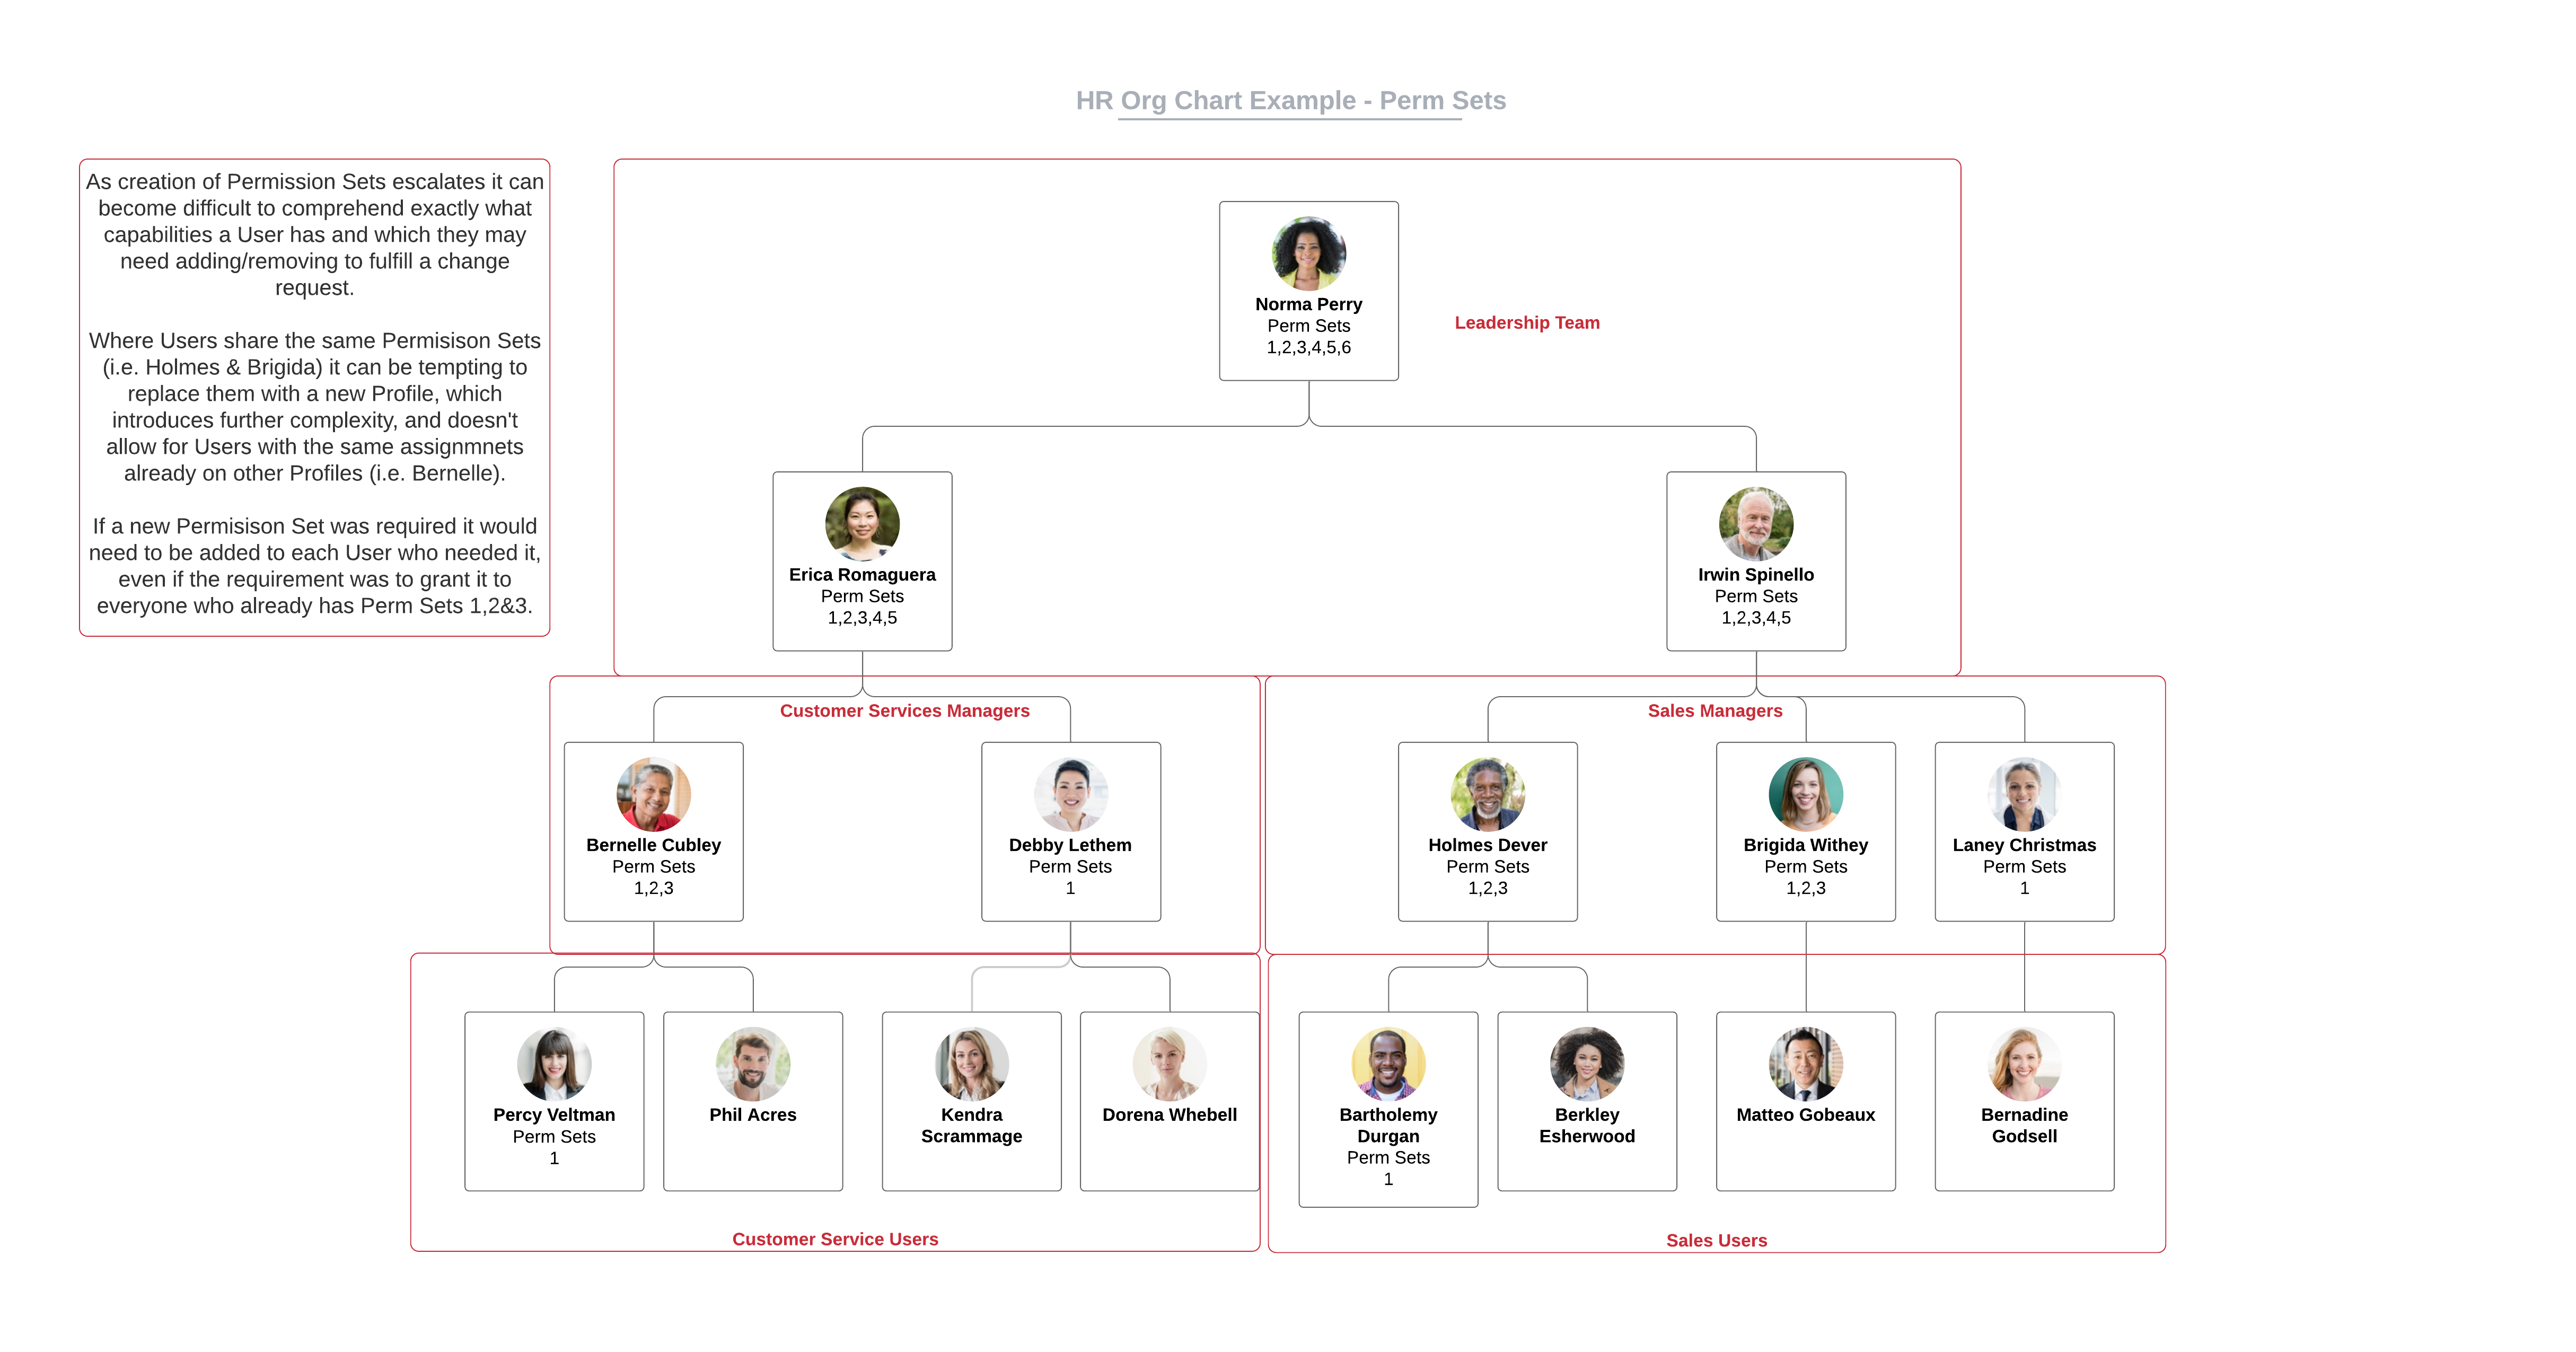 HR Org Chart Example using Permission Sets